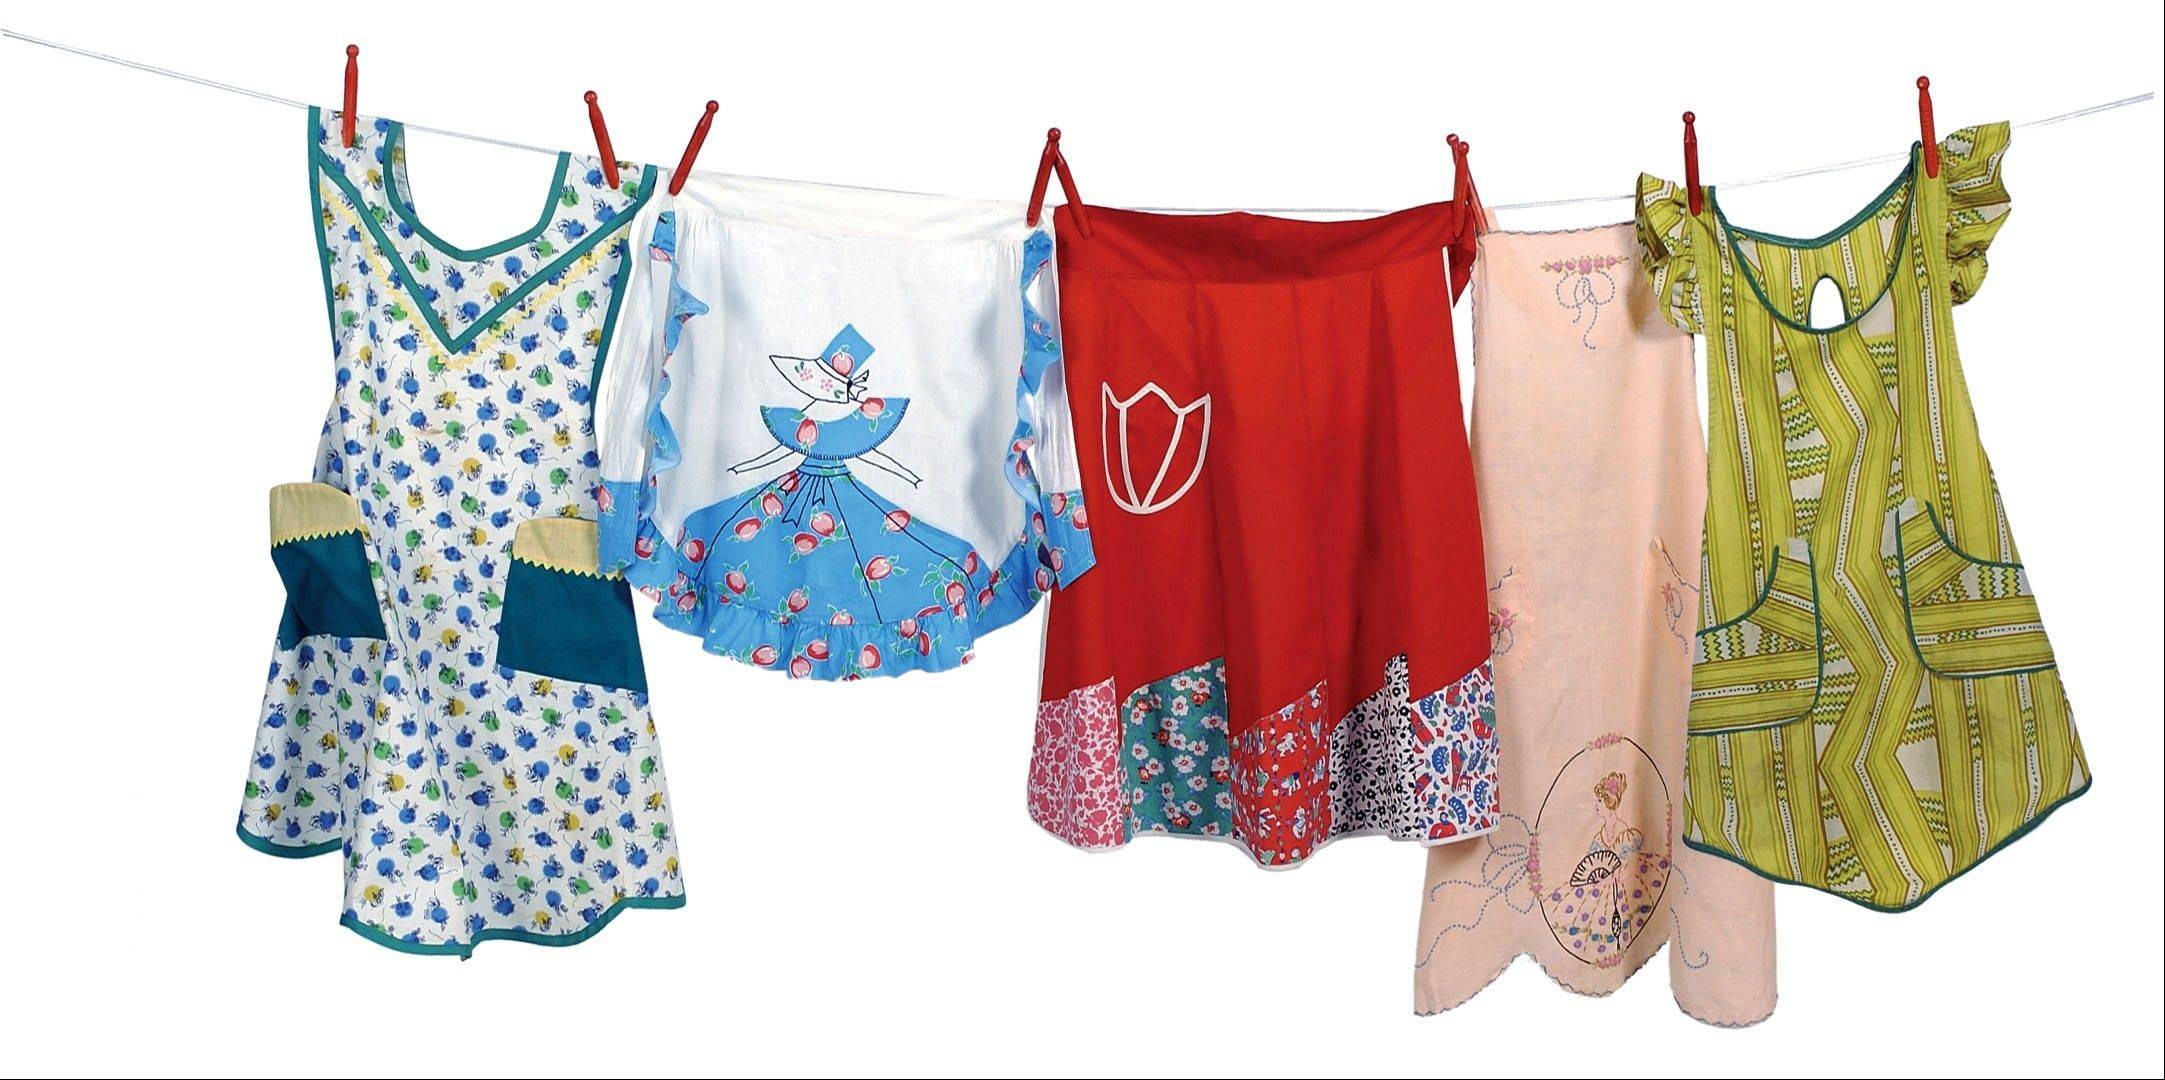 Every apron tells a story. Despite the nostalgia of wearing an old apron, crafters still enjoy hand-making their own.